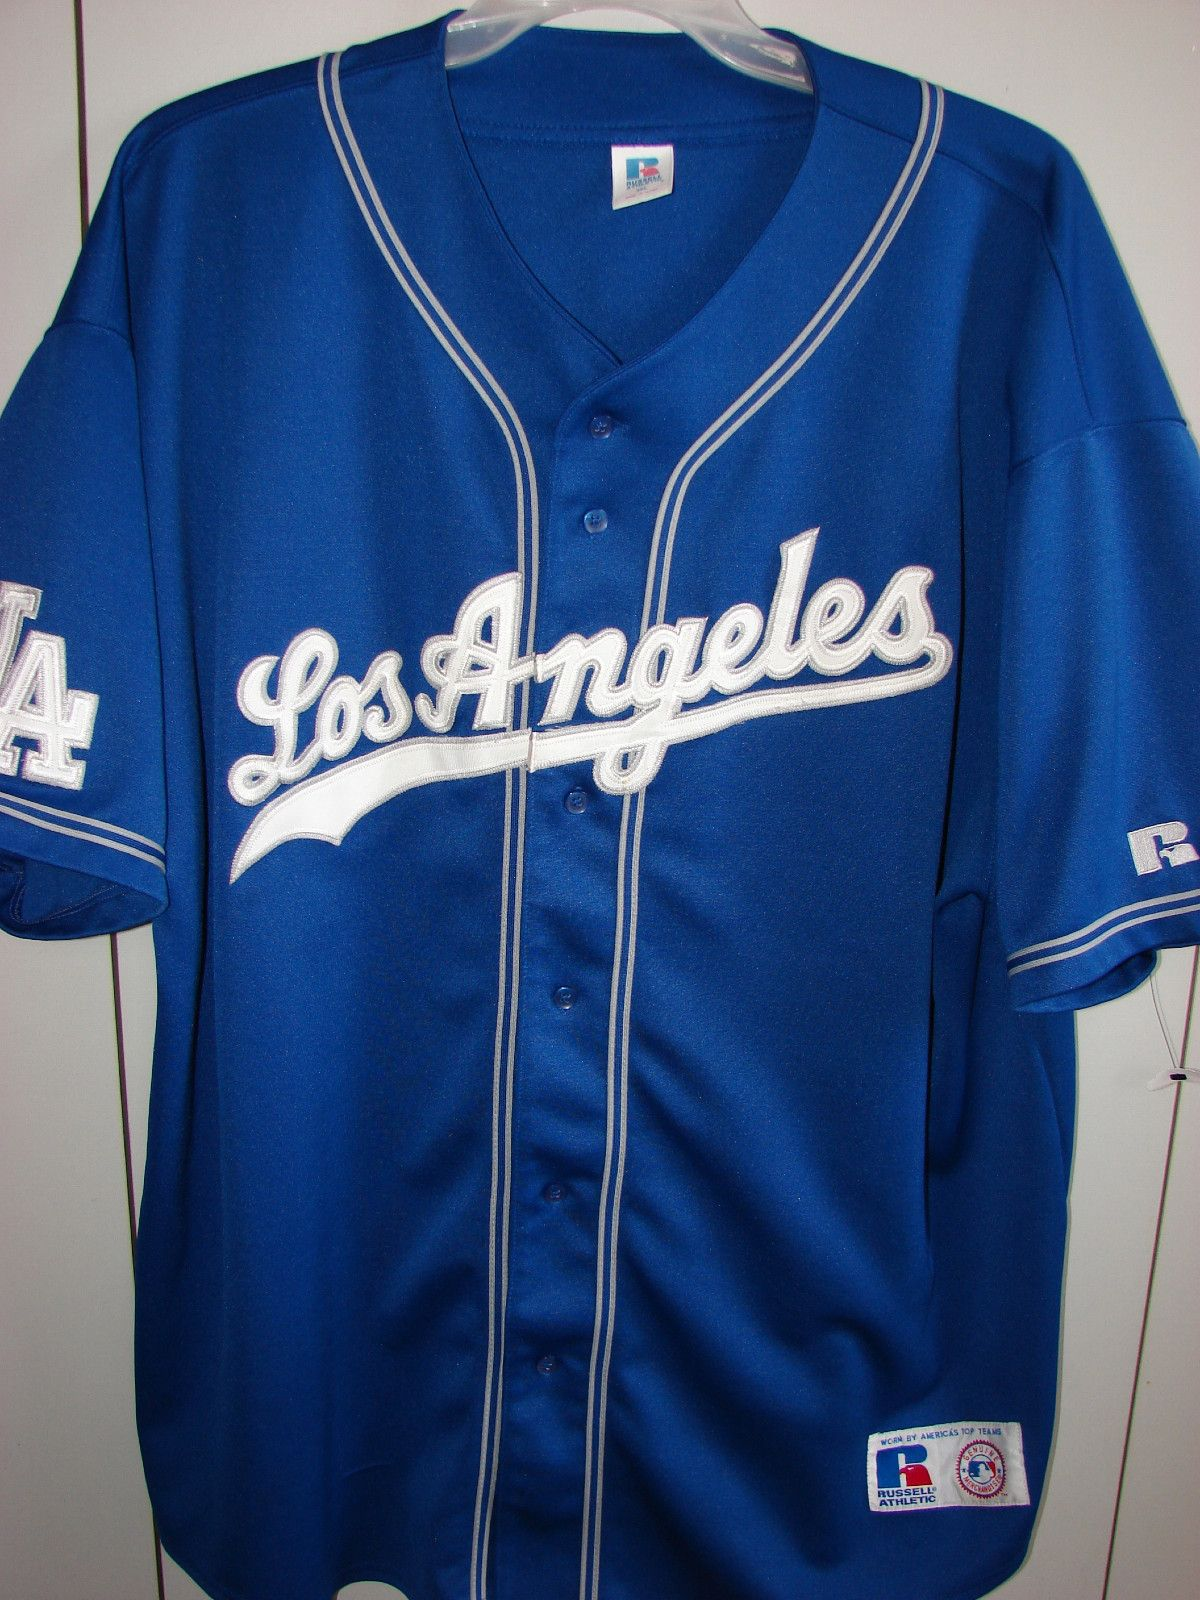 the latest d5b52 141e7 Los Angeles Dodgers Alternative Blue Jersey 1999-2001 ...